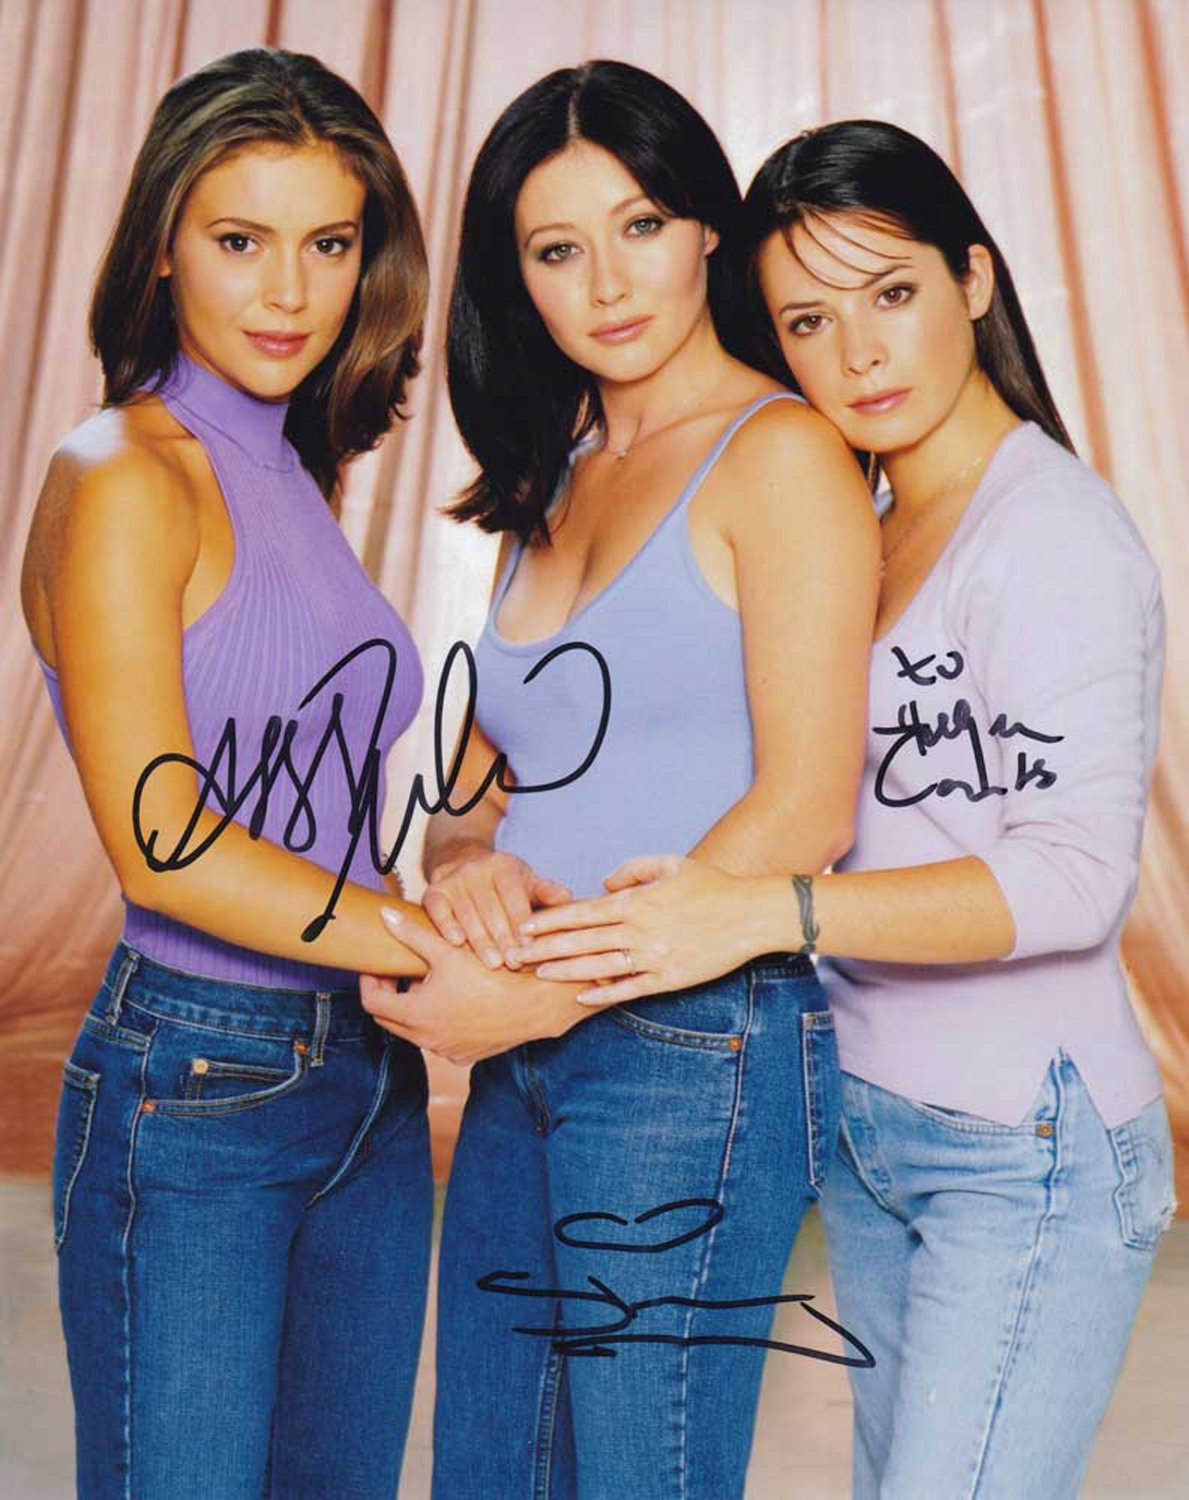 Charmed Cast X 3 Autographed Photo (Holly Marie Combs, Alyssa Milano & Rose McGowan)